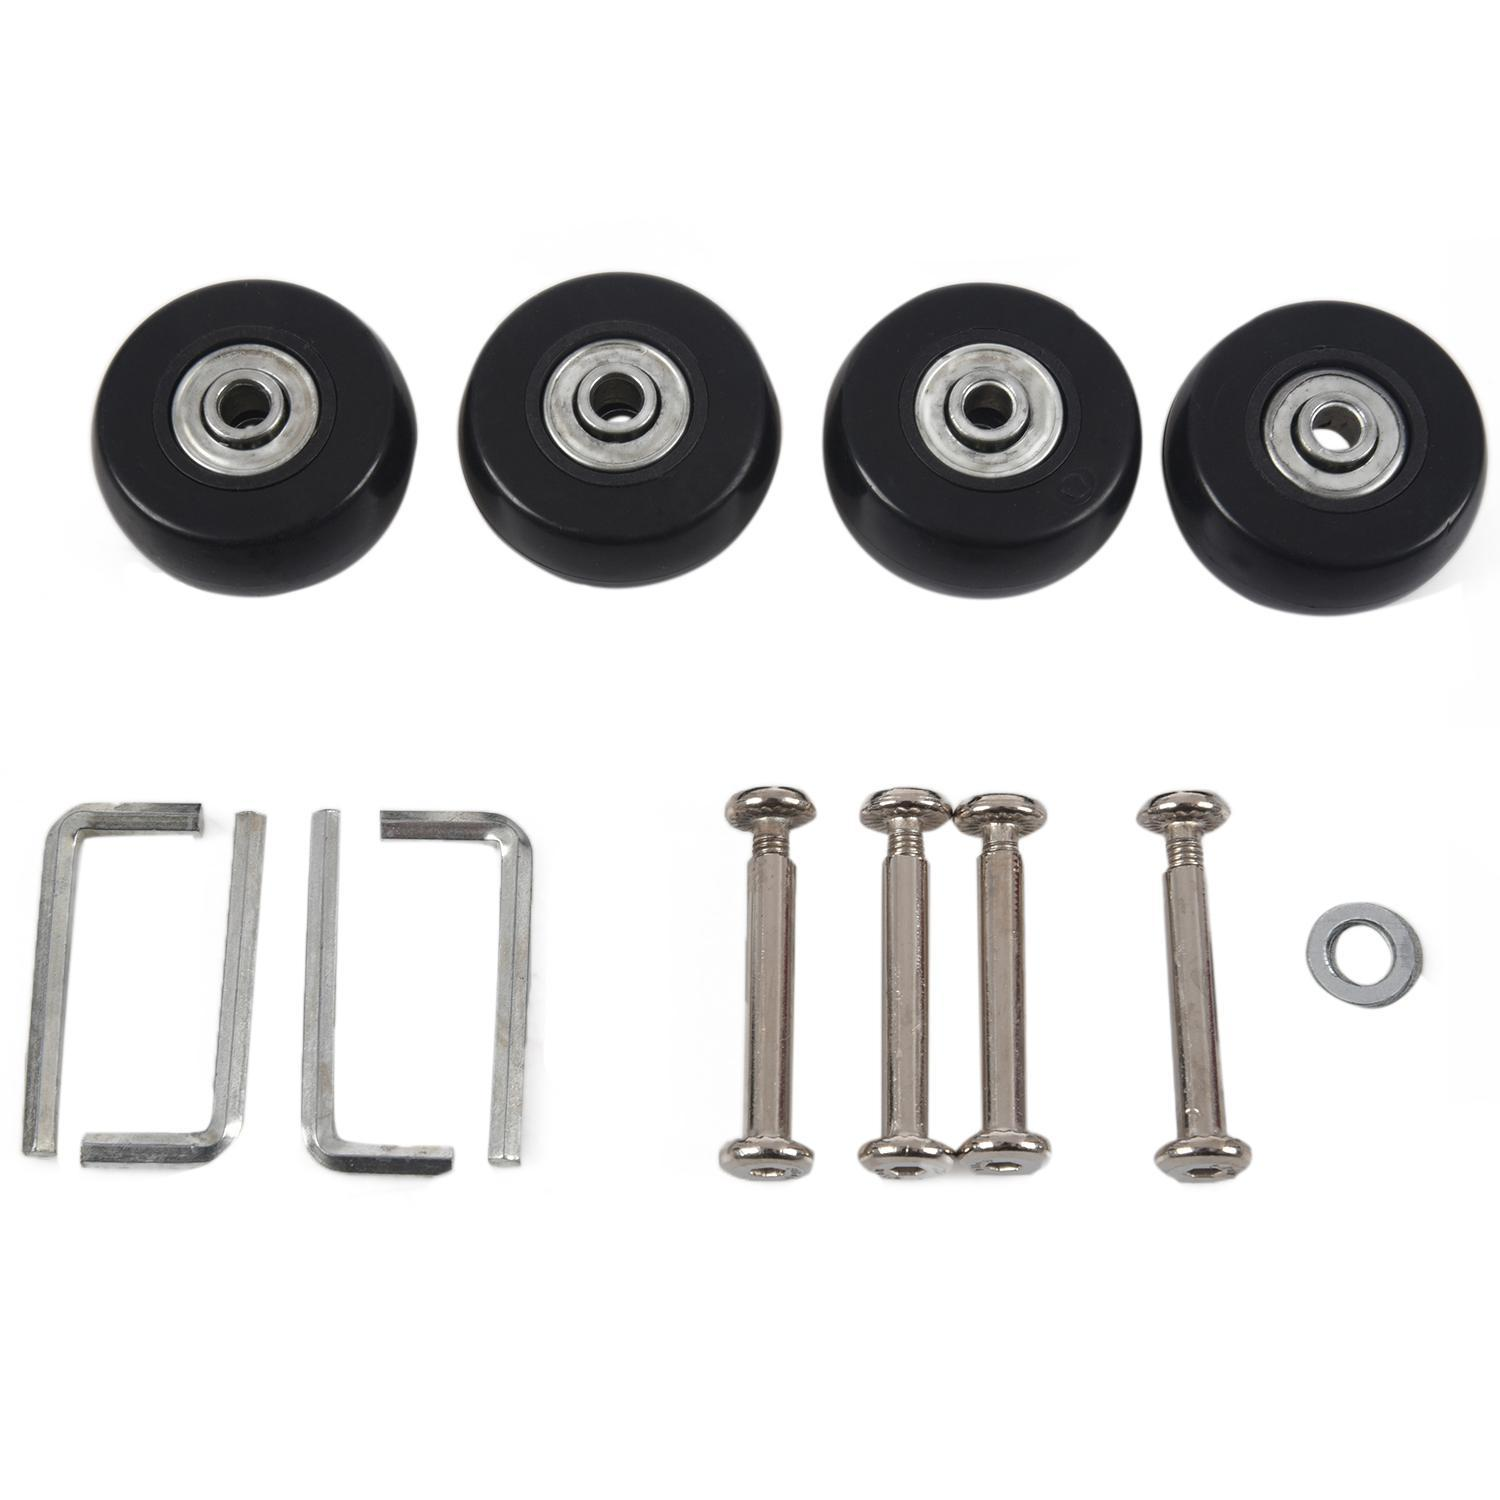 40 X 18mm Luggage Suitcase Wheels Replacement Repair Kit 2 Pair By Rainning.